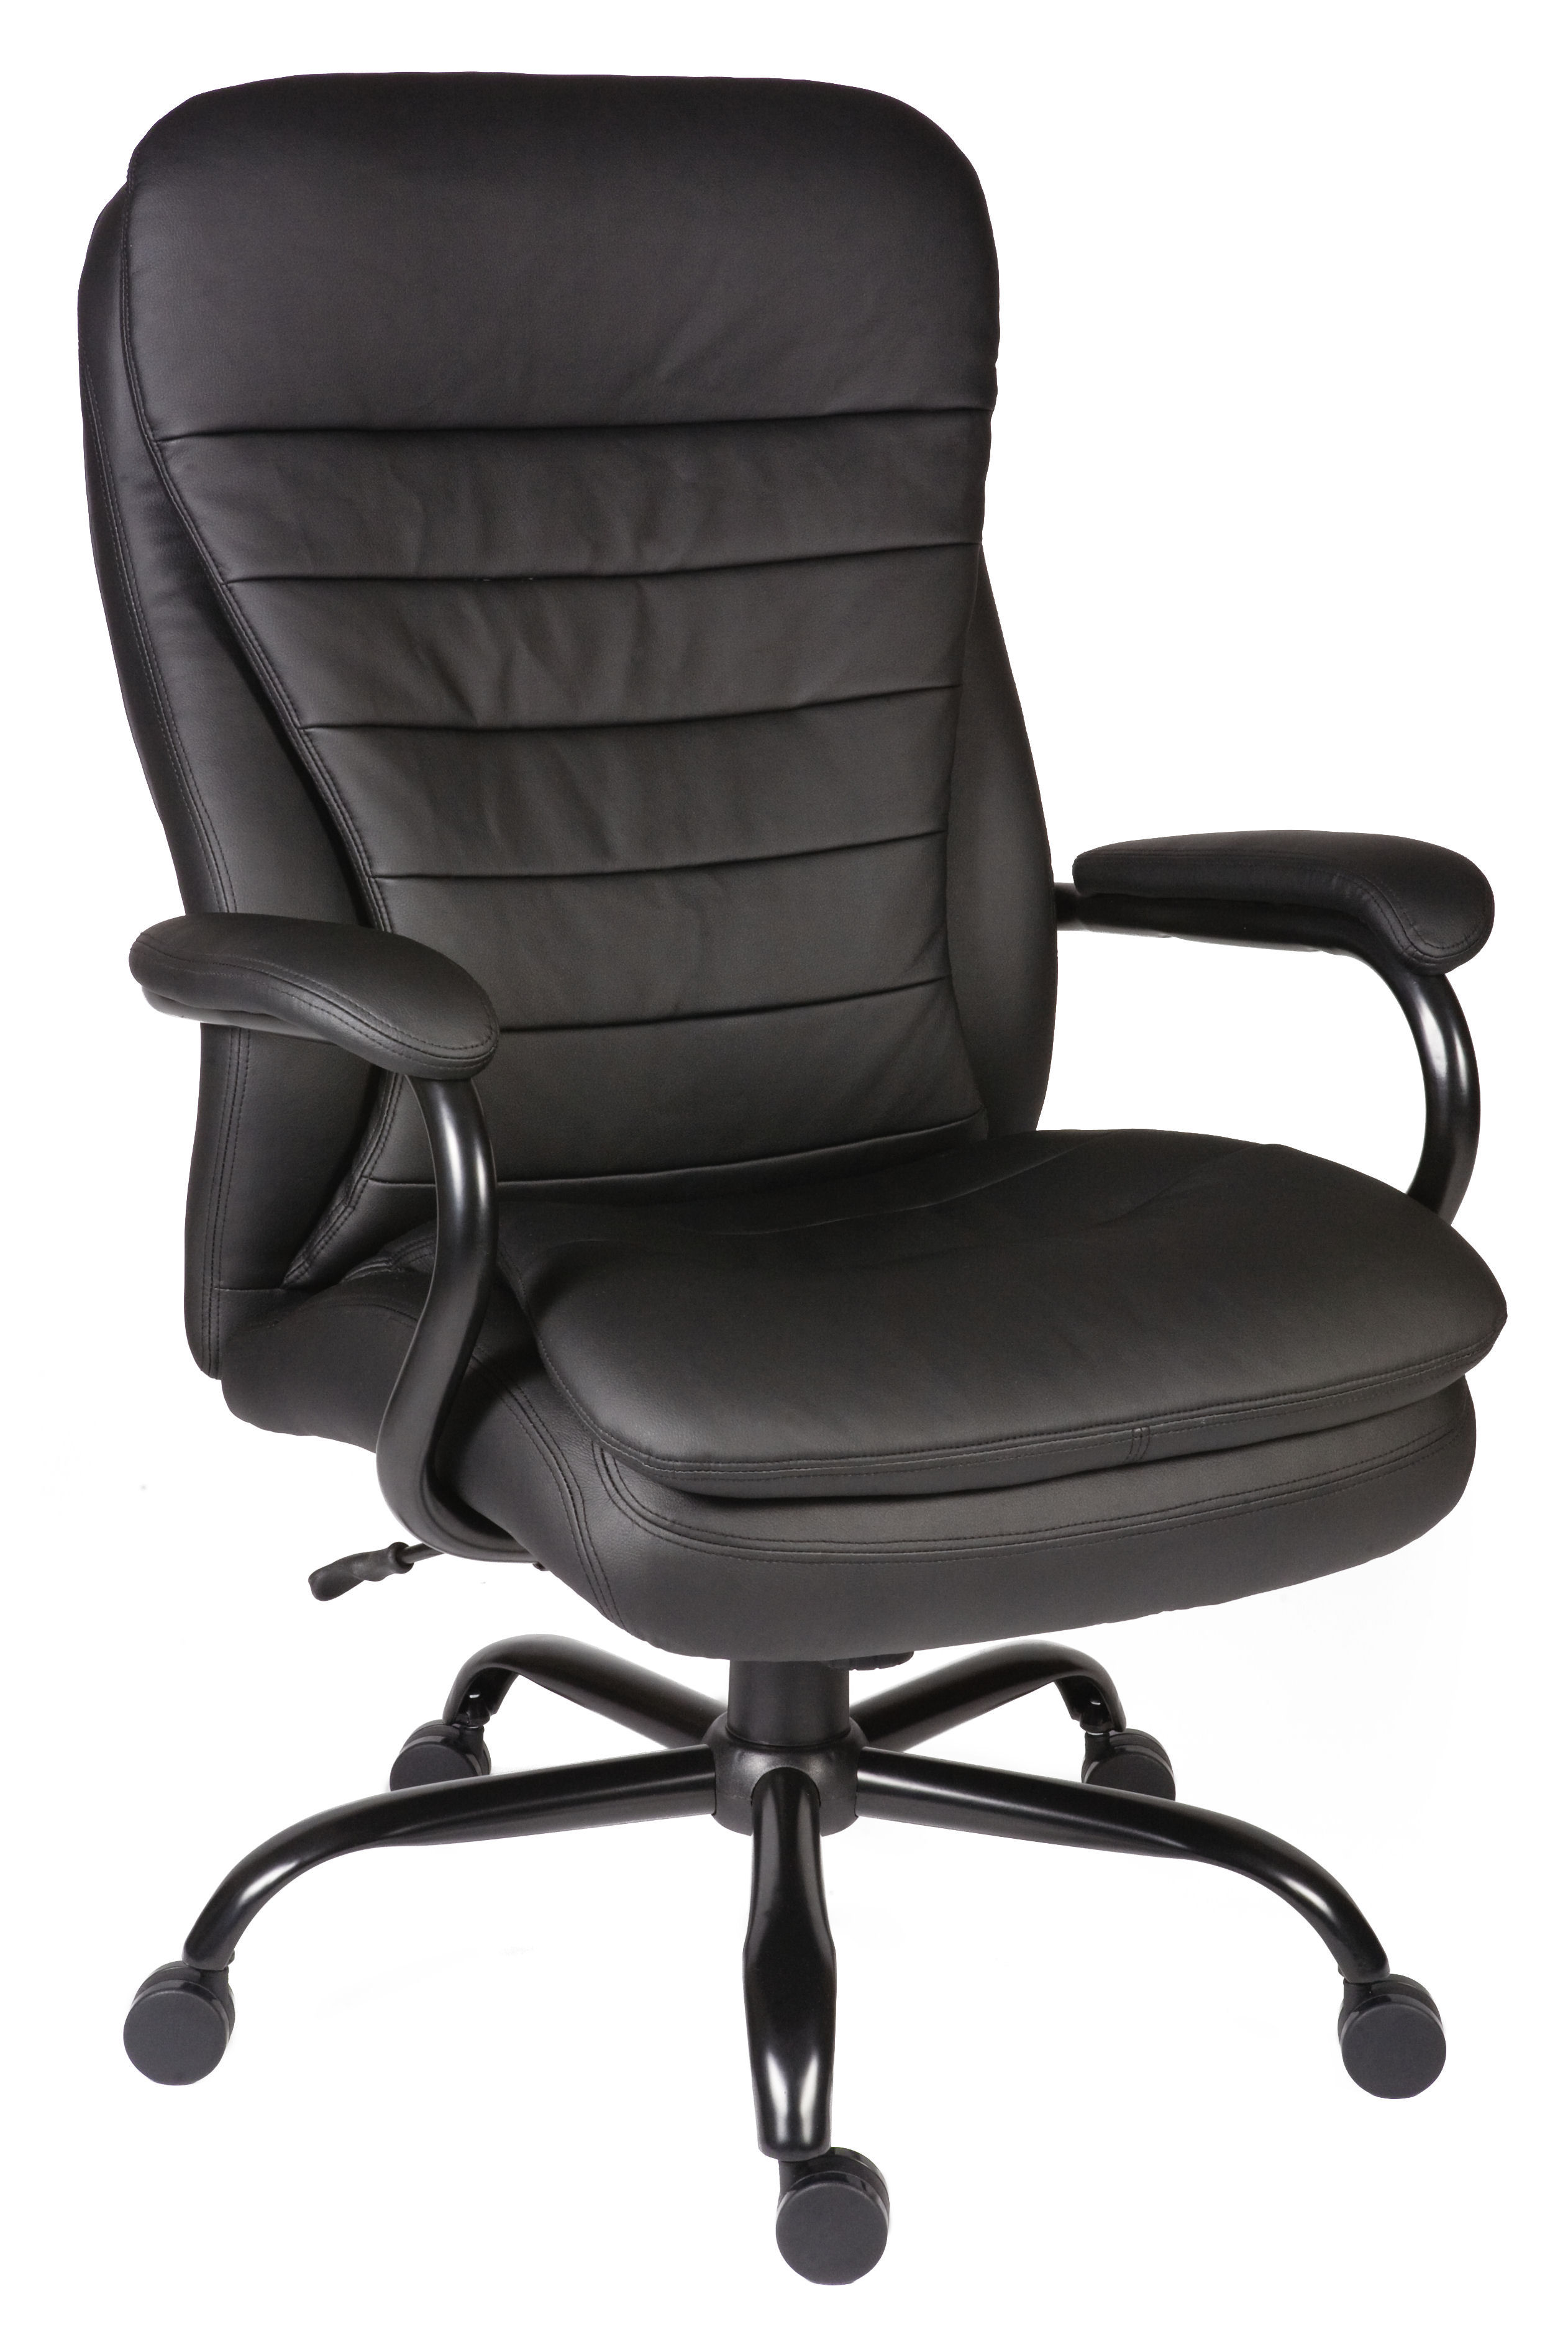 Teknik Office Goliath Heavy Duty Black Bonded Leather Executive Chair Matching Padded Armrests